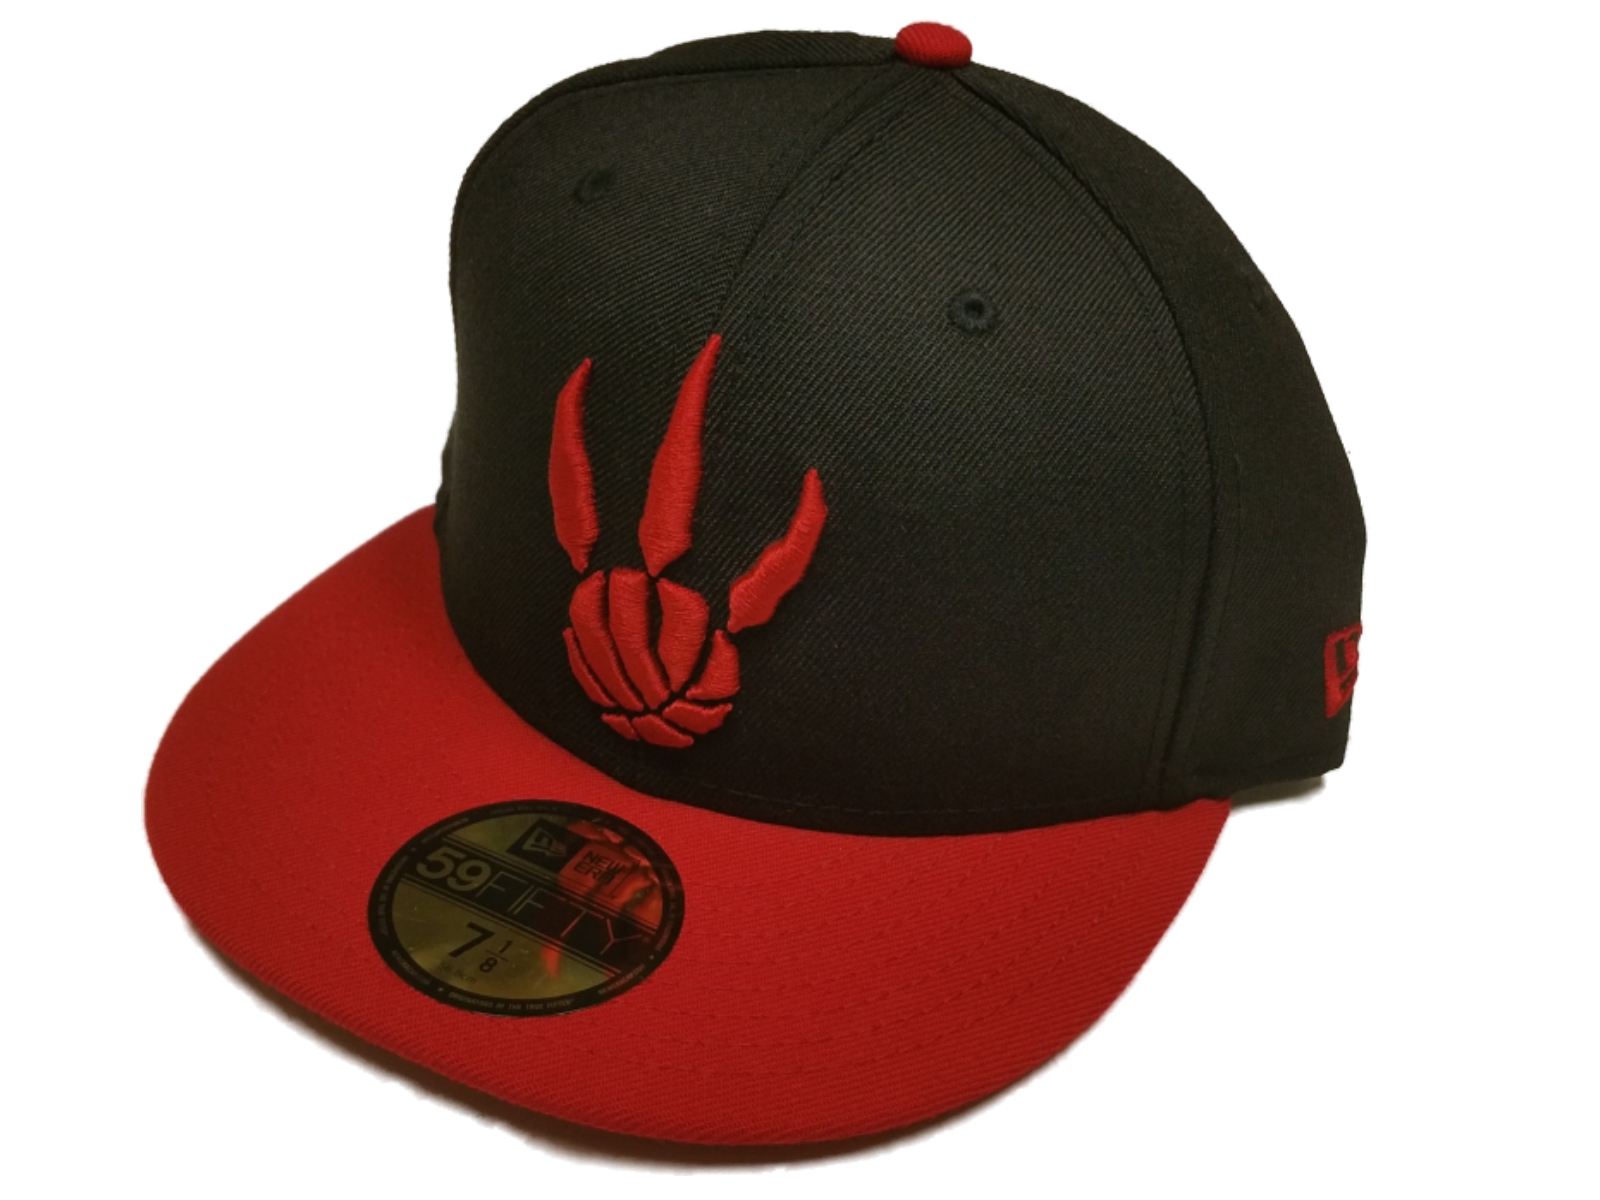 4e493beb2b9 Details about Toronto Raptors New Era 59Fifty Black Red Classic NBA Fitted  Hat Cap (7 1/8)